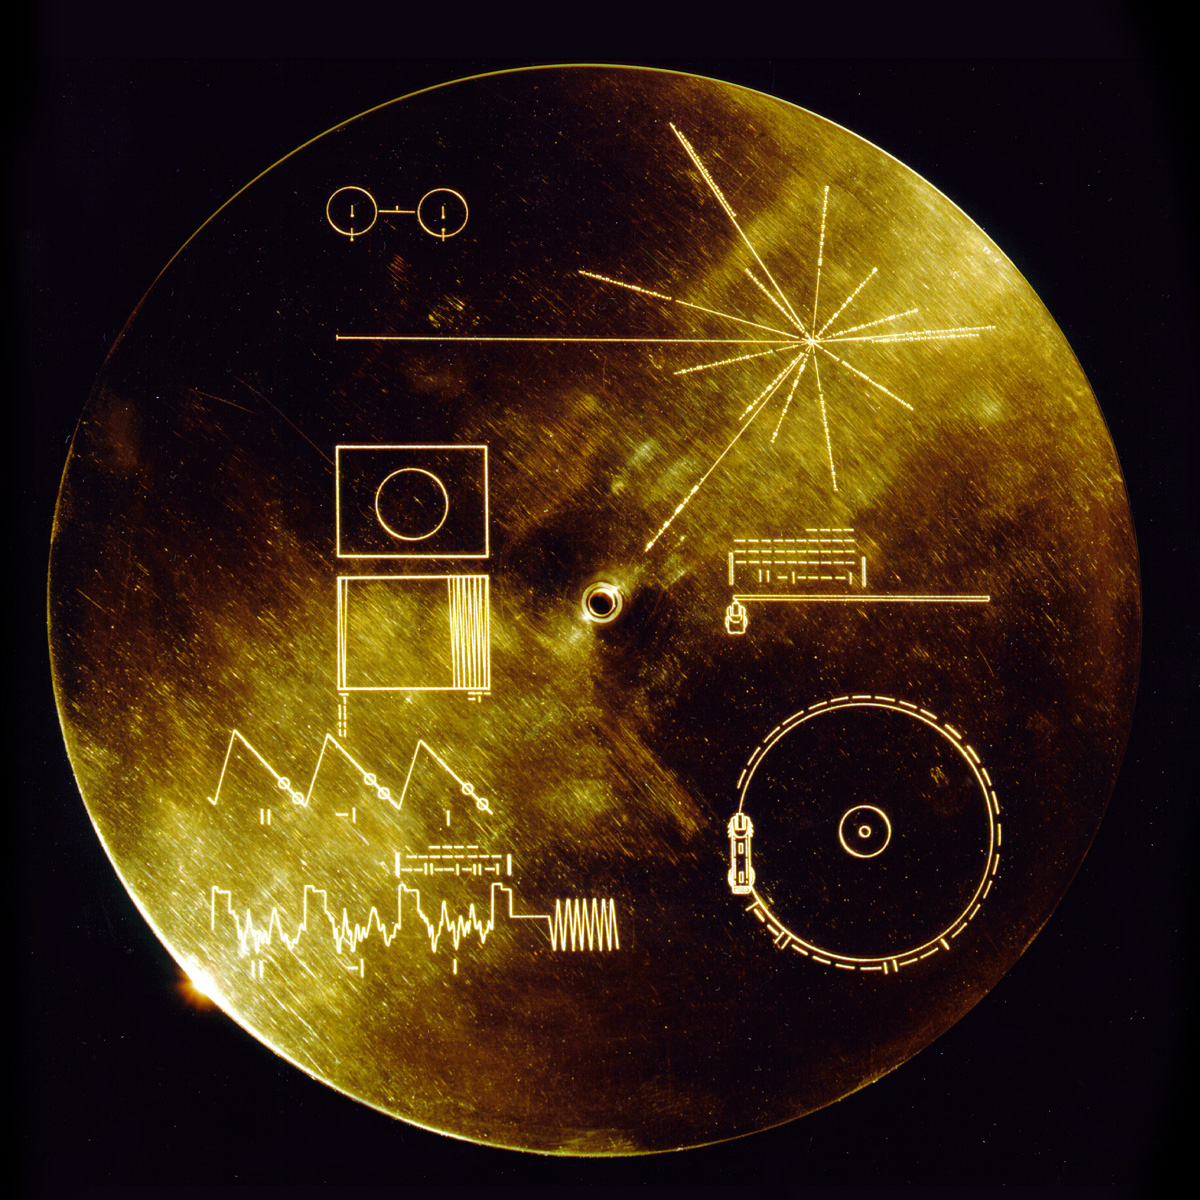 Voyager 1 Golden Disk (page 2) - Pics about space